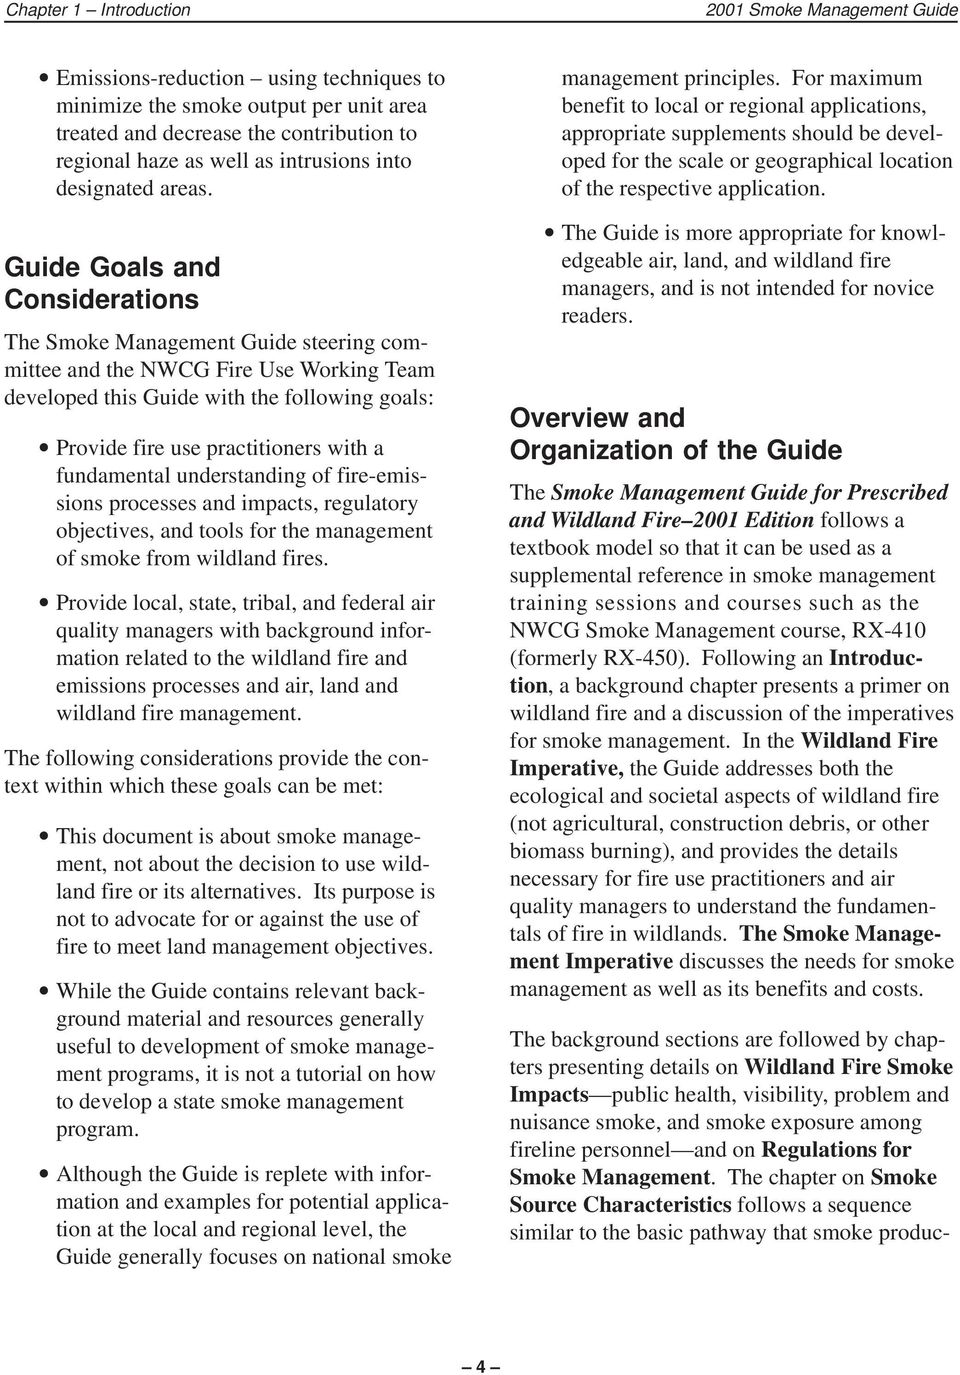 Guide Goals and Considerations The Smoke Management Guide steering committee and the NWCG Fire Use Working Team developed this Guide with the following goals: Provide fire use practitioners with a